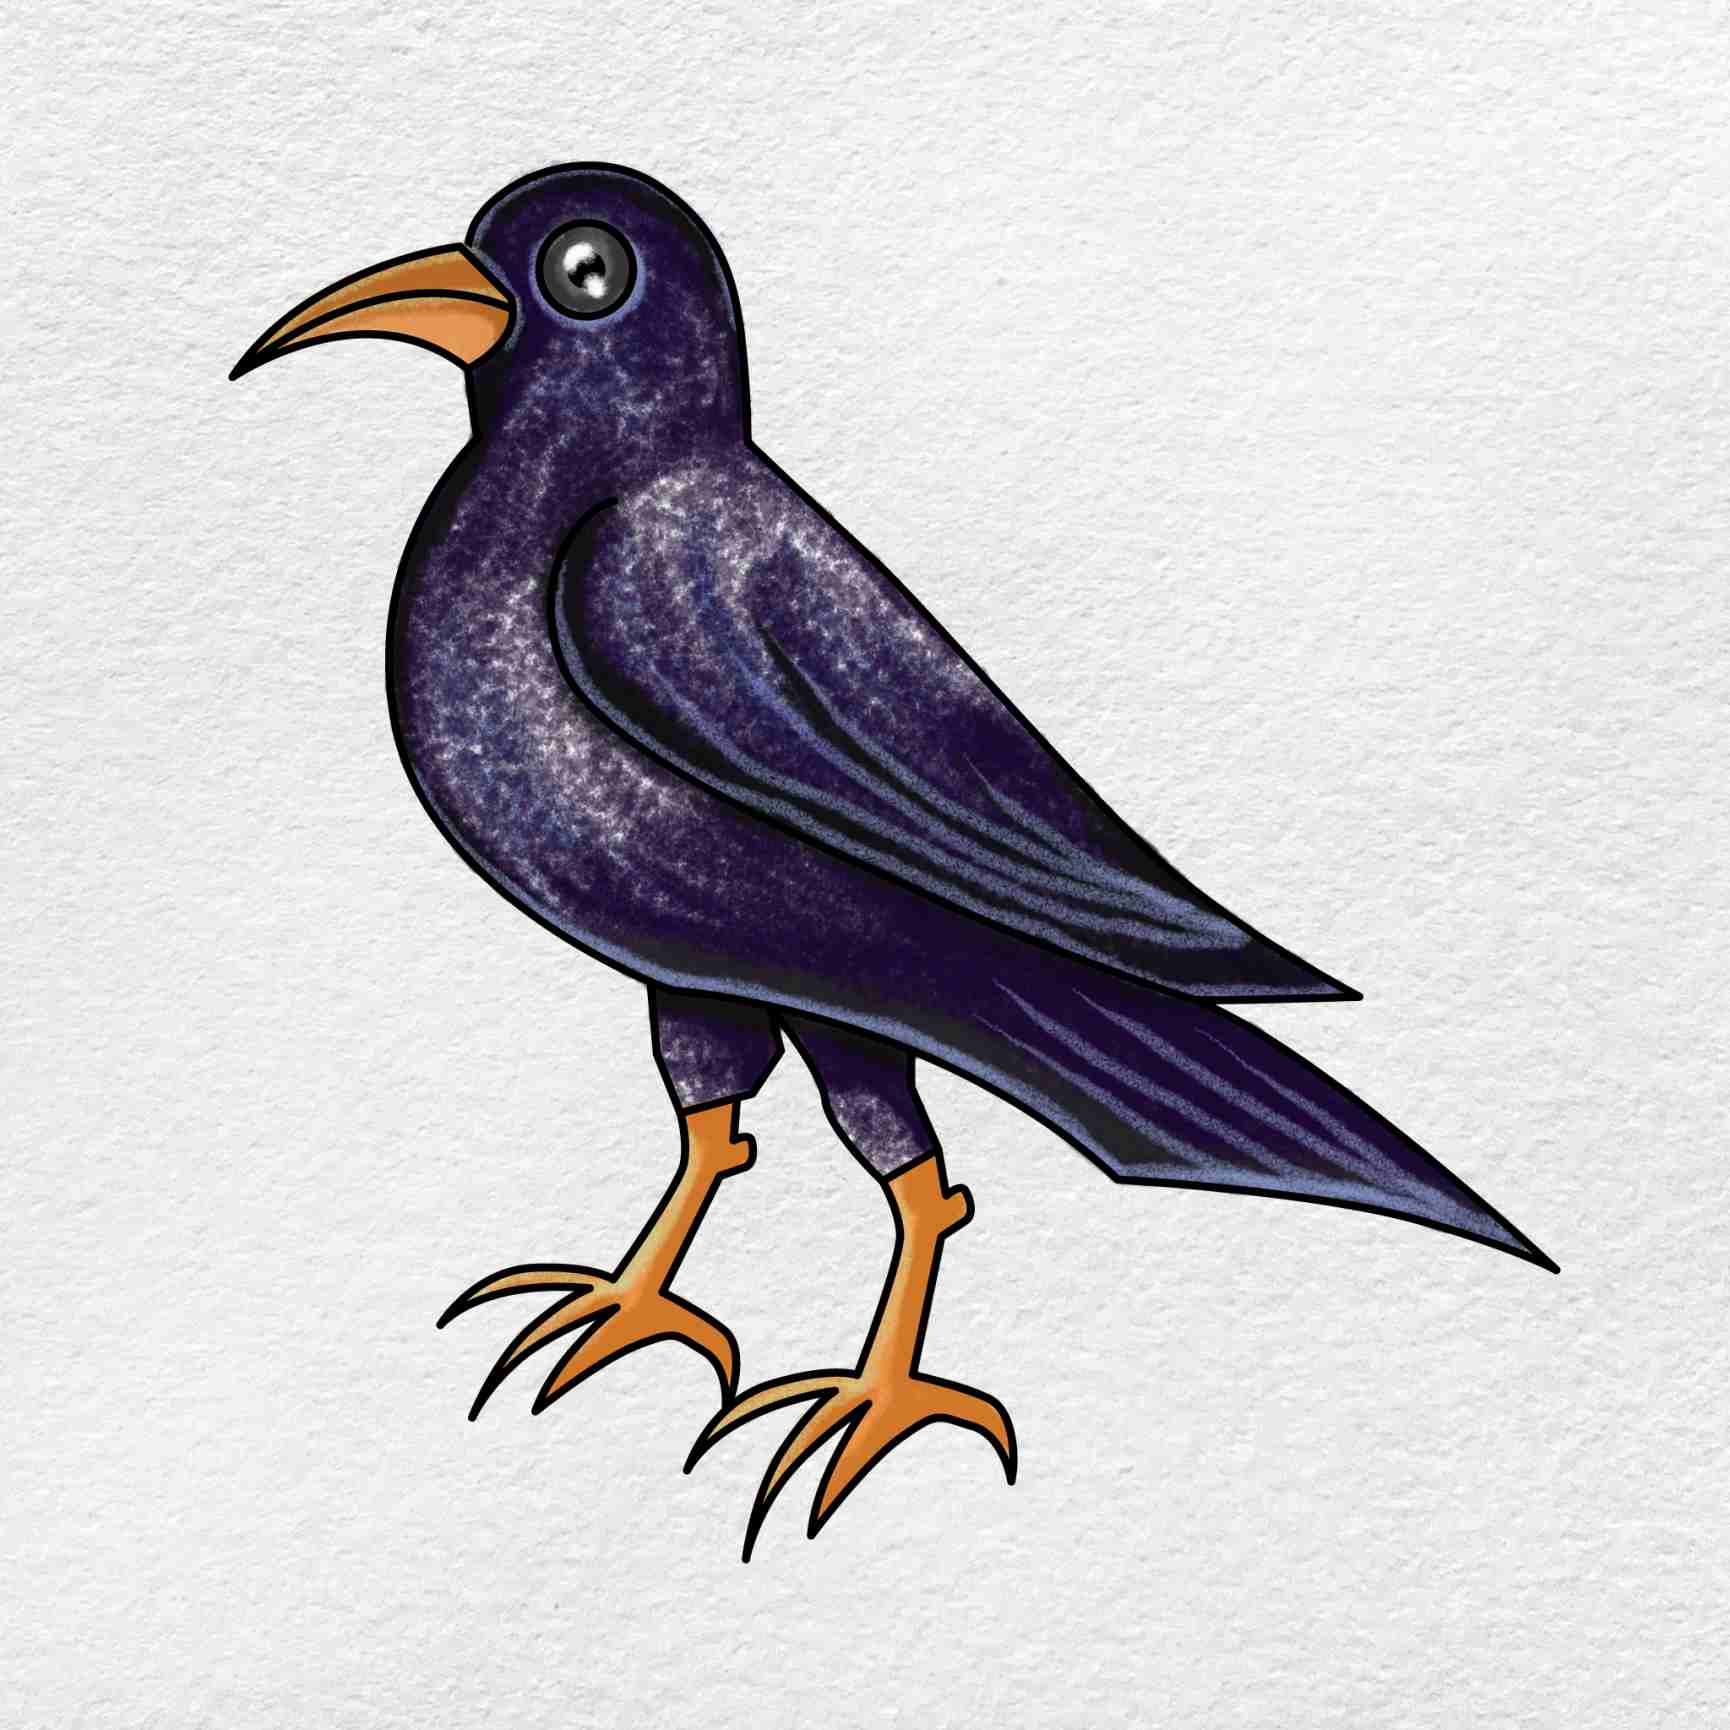 How To Draw A Crow: Step 6